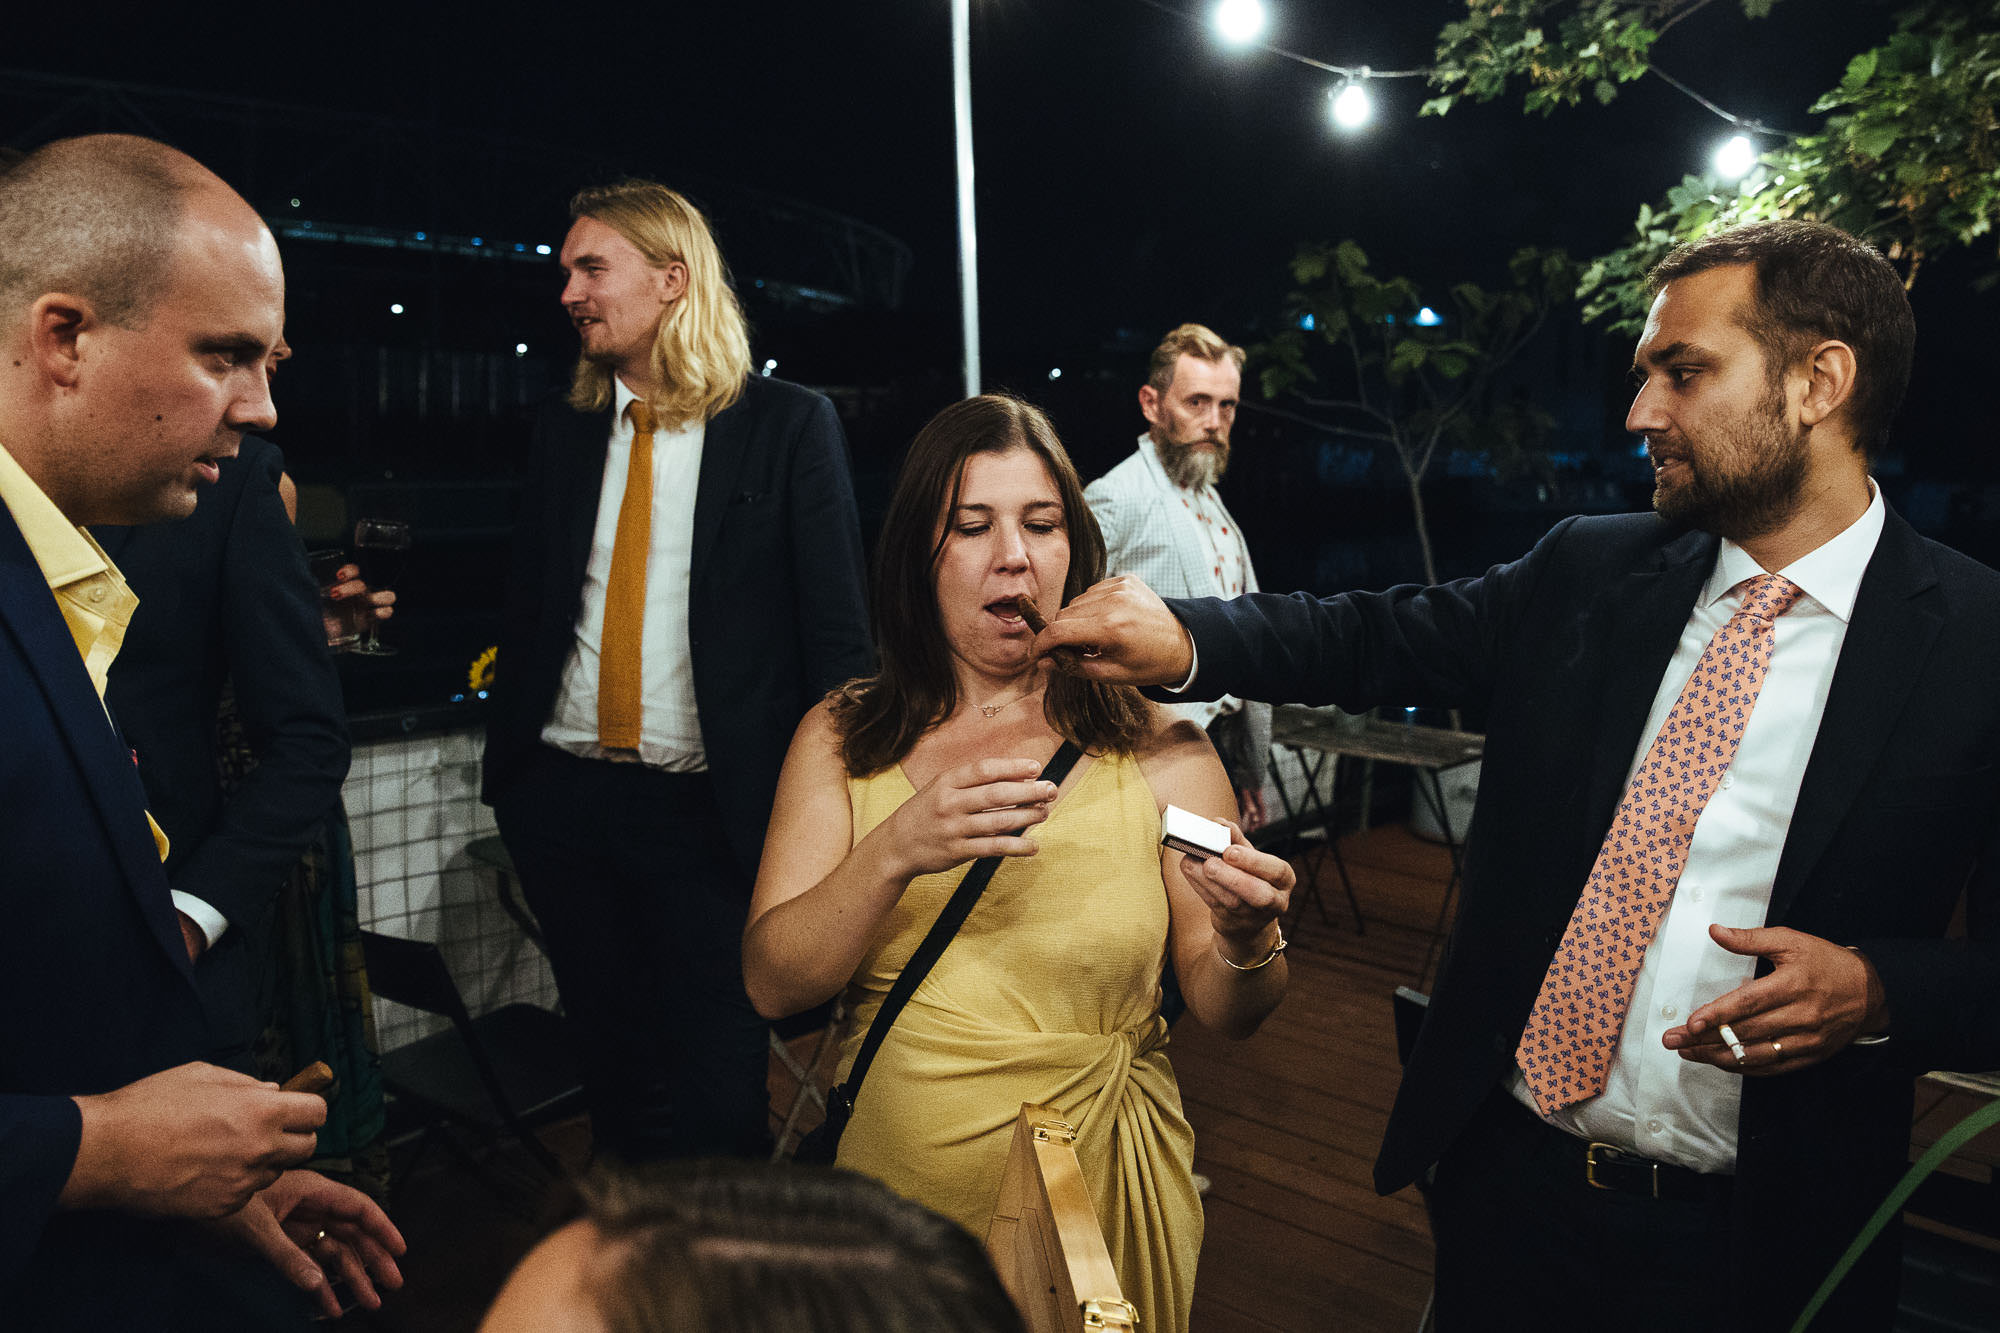 schnapps and cigars at stour space wedding